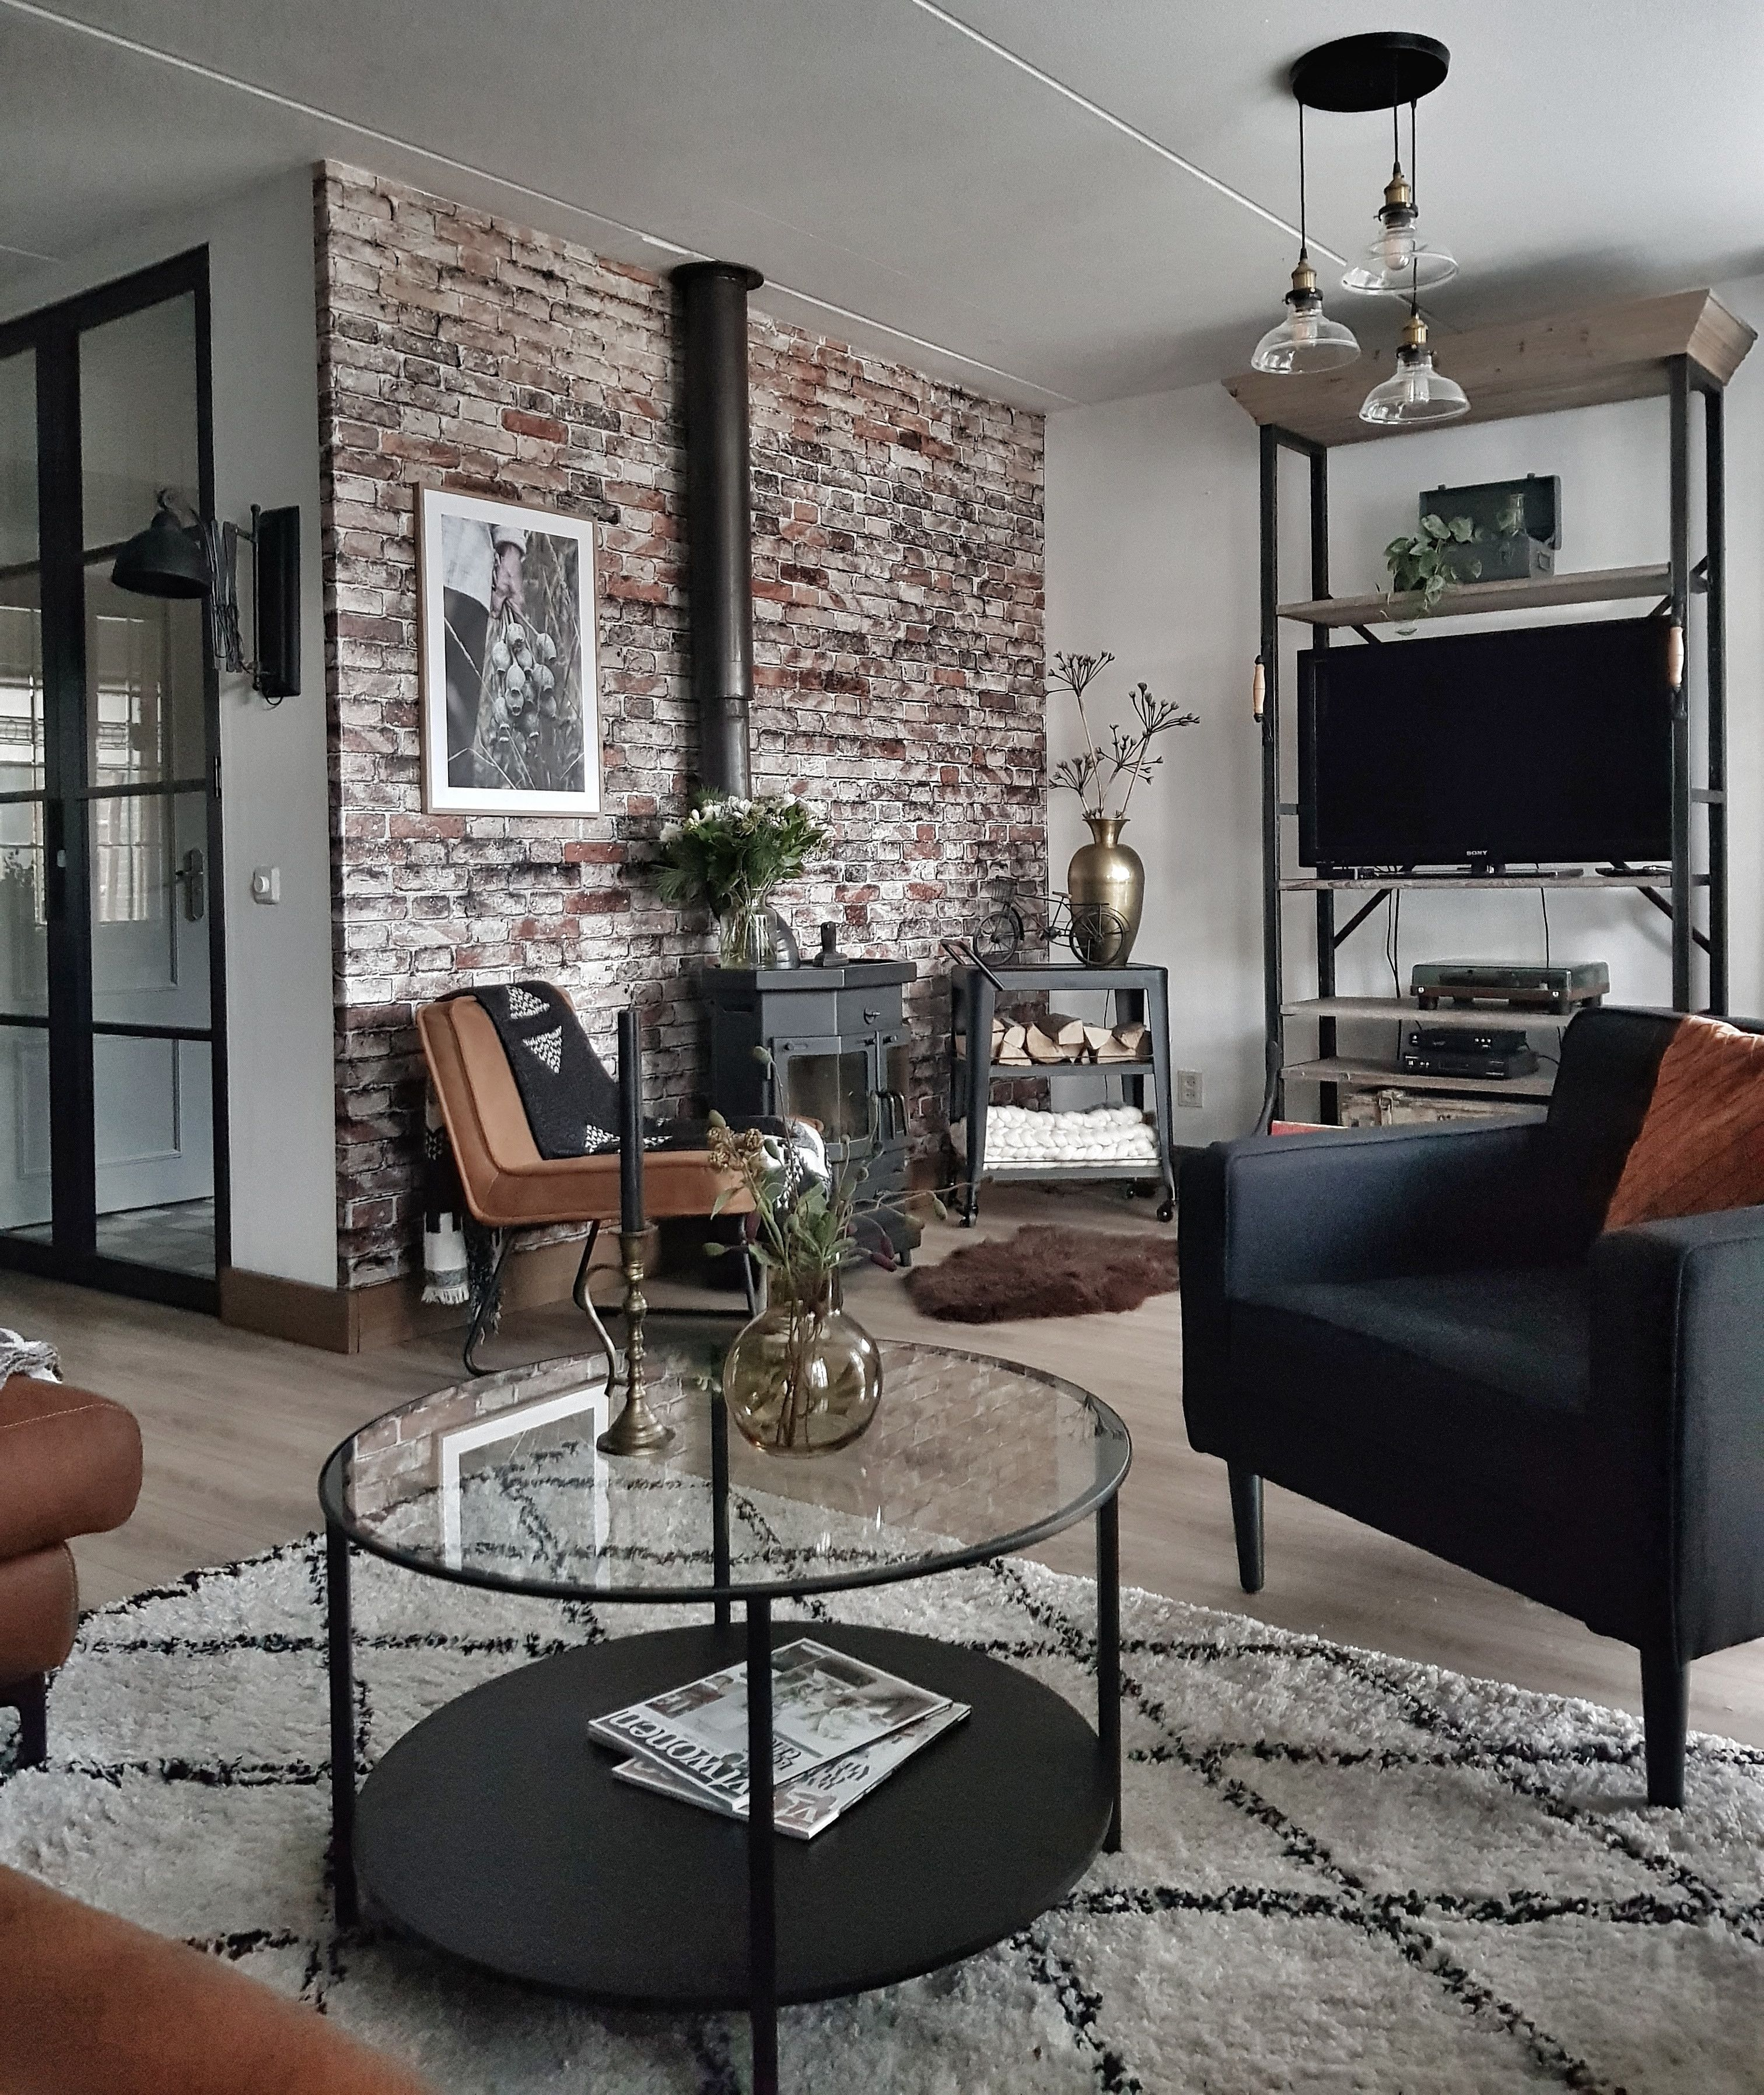 Brickwork Black Wallpaper Living Room Industrial Style Living Room Industrial Decor Living Room #wallpaper #decor #living #room